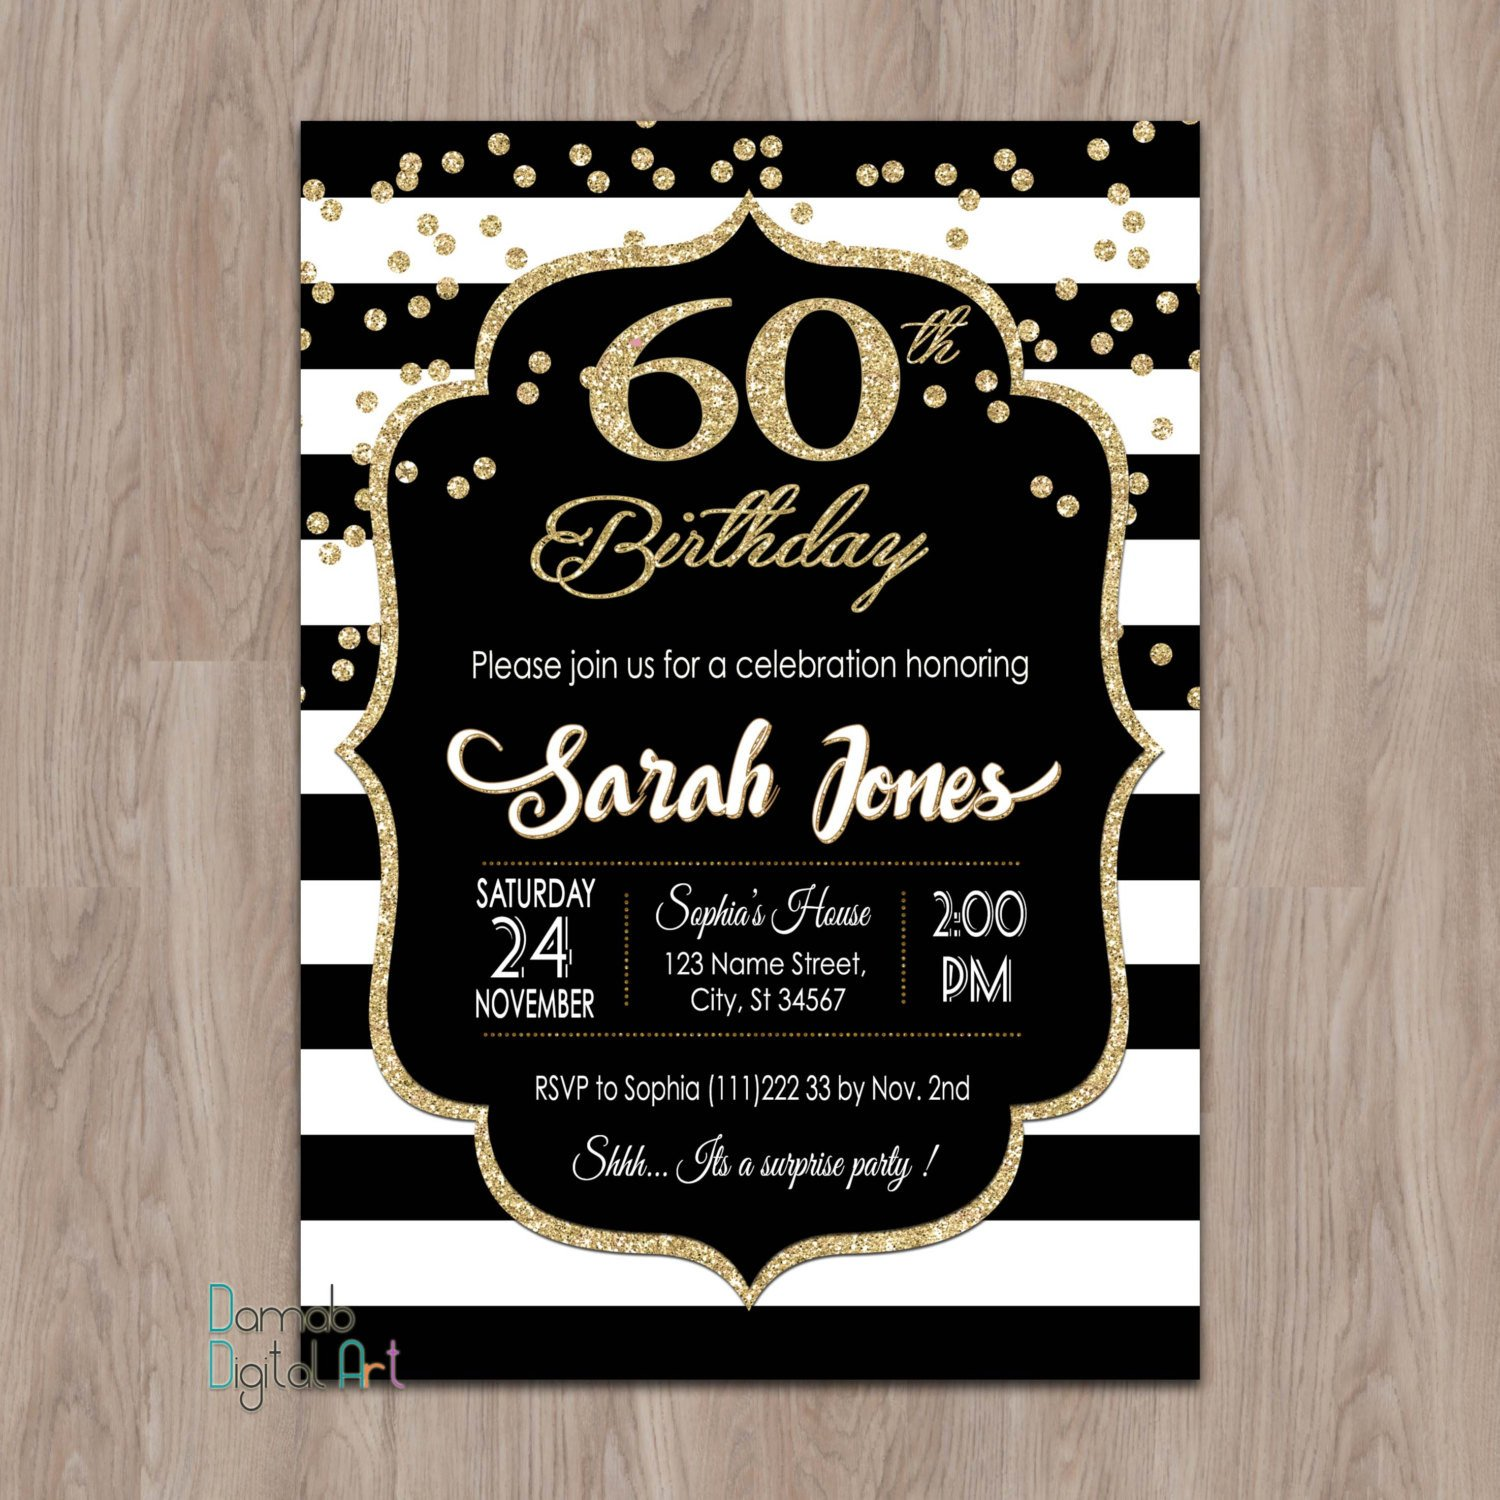 60 Th Birthday Invitation 60th Birthday Invitations 60th Birthday Invitations for